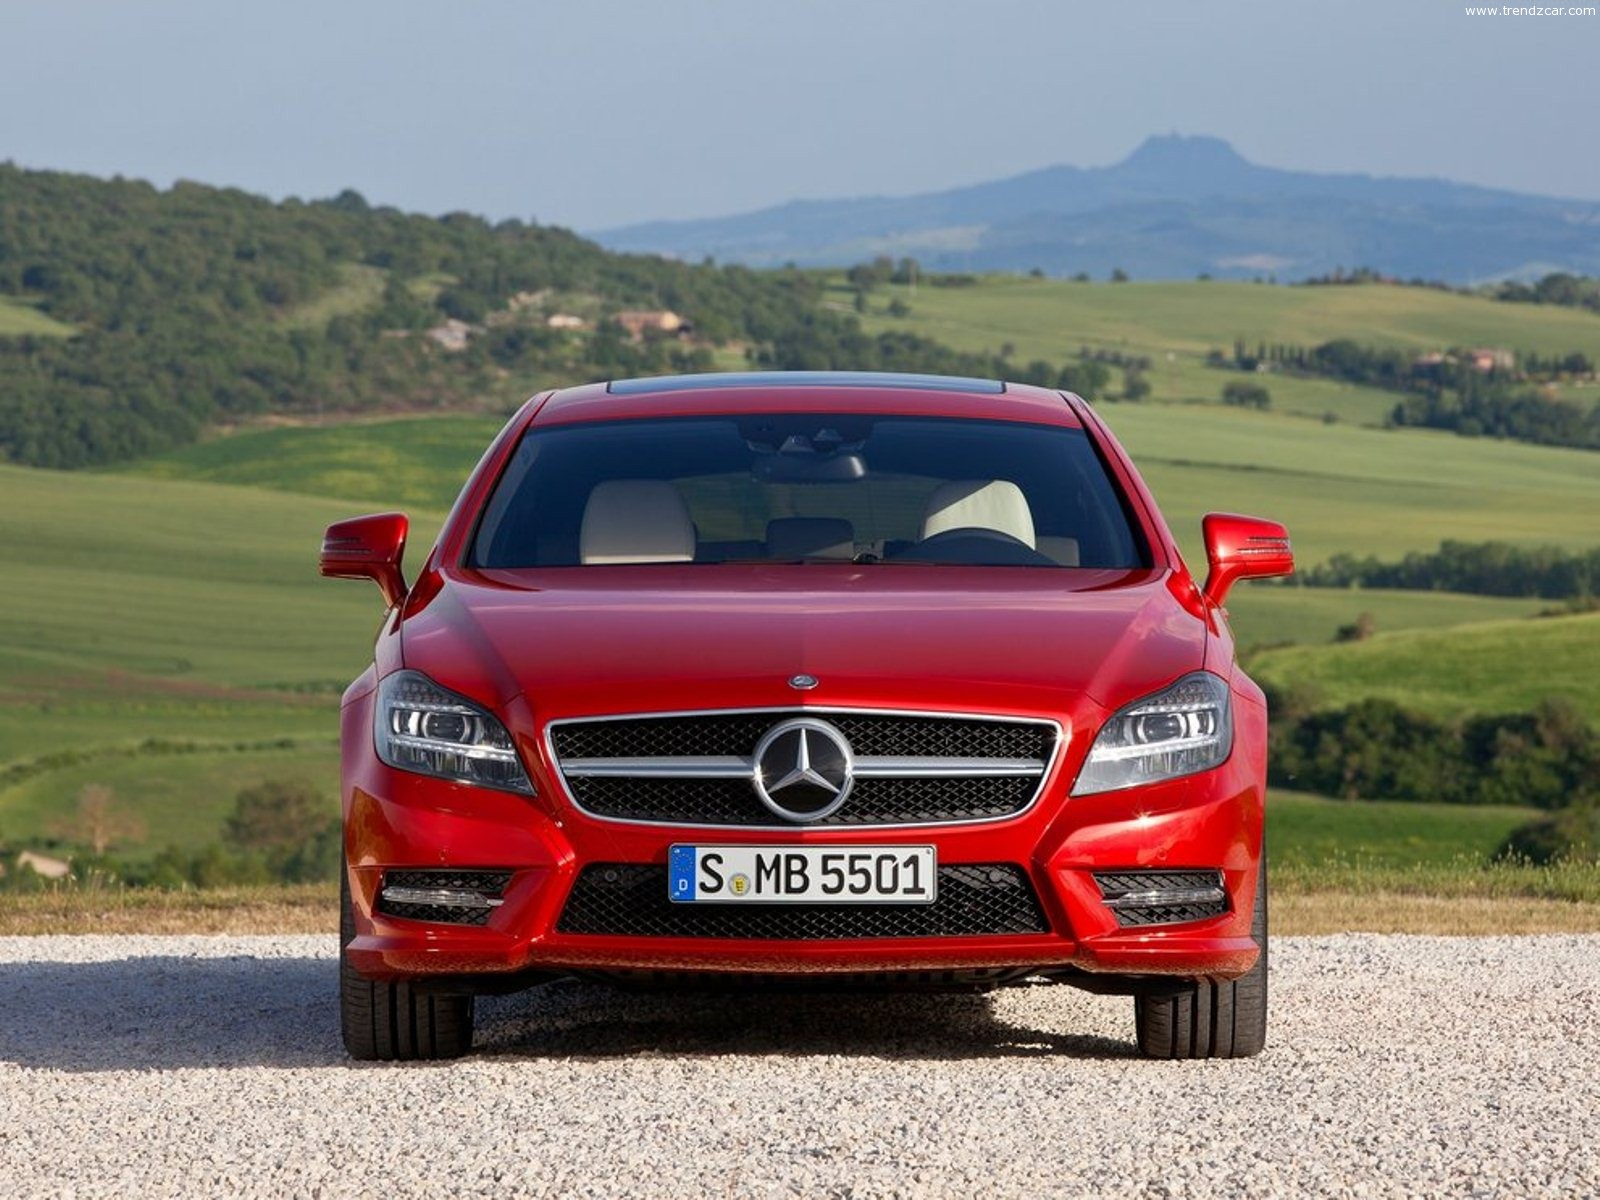 2013 Mercedes Benz CLS Shooting Brake Front View